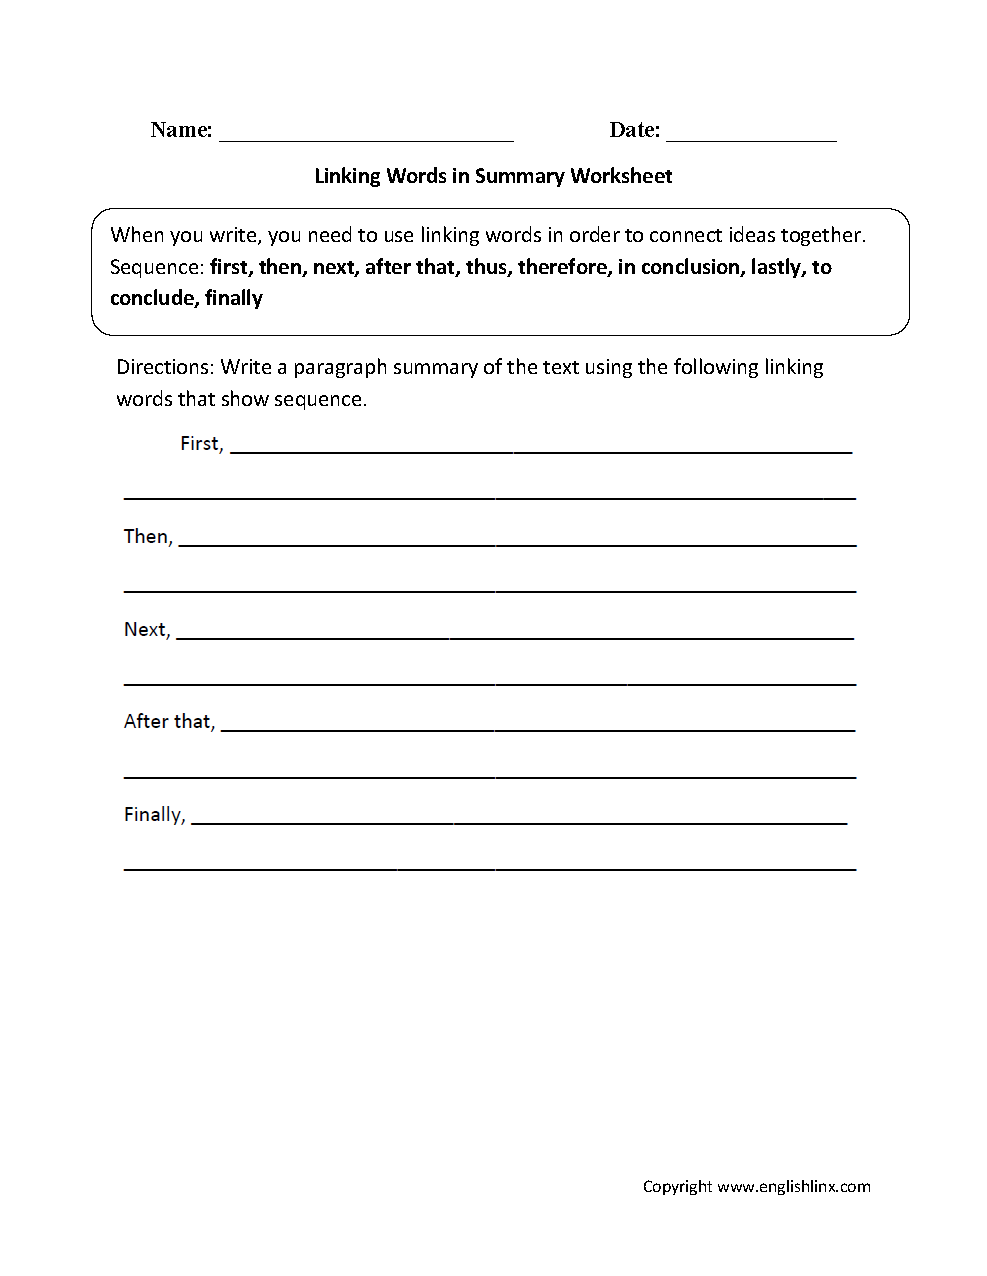 worksheet Summary Worksheet writing worksheets linking words in summary worksheet